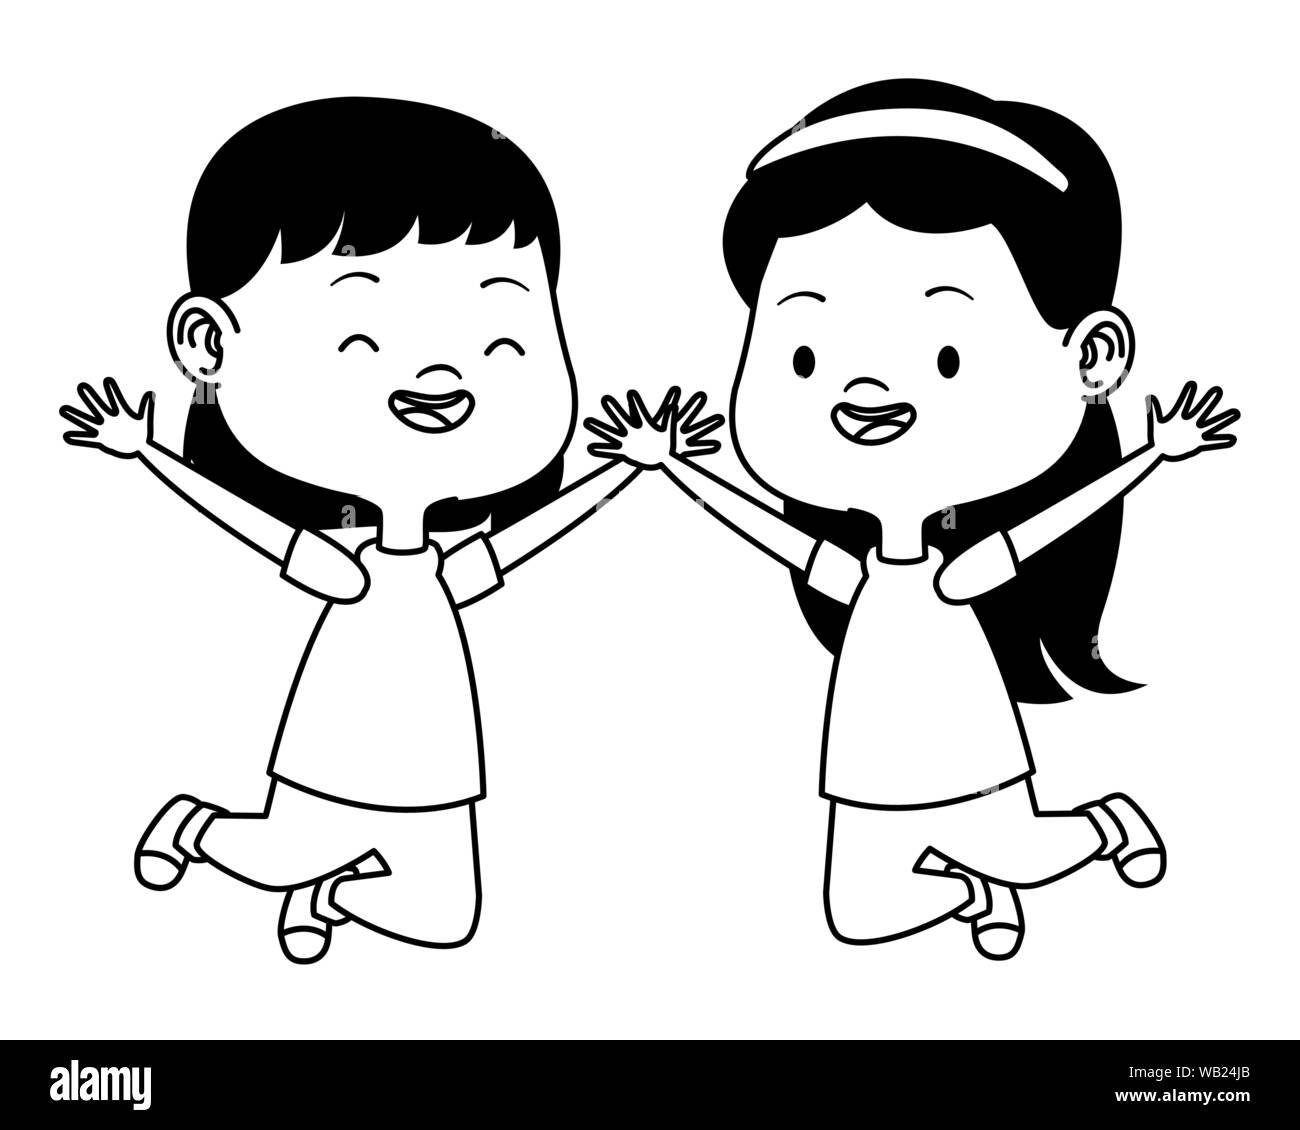 Cute Happy Kids Having Fun Cartoons In Black And White Stock Vector Image Art Alamy